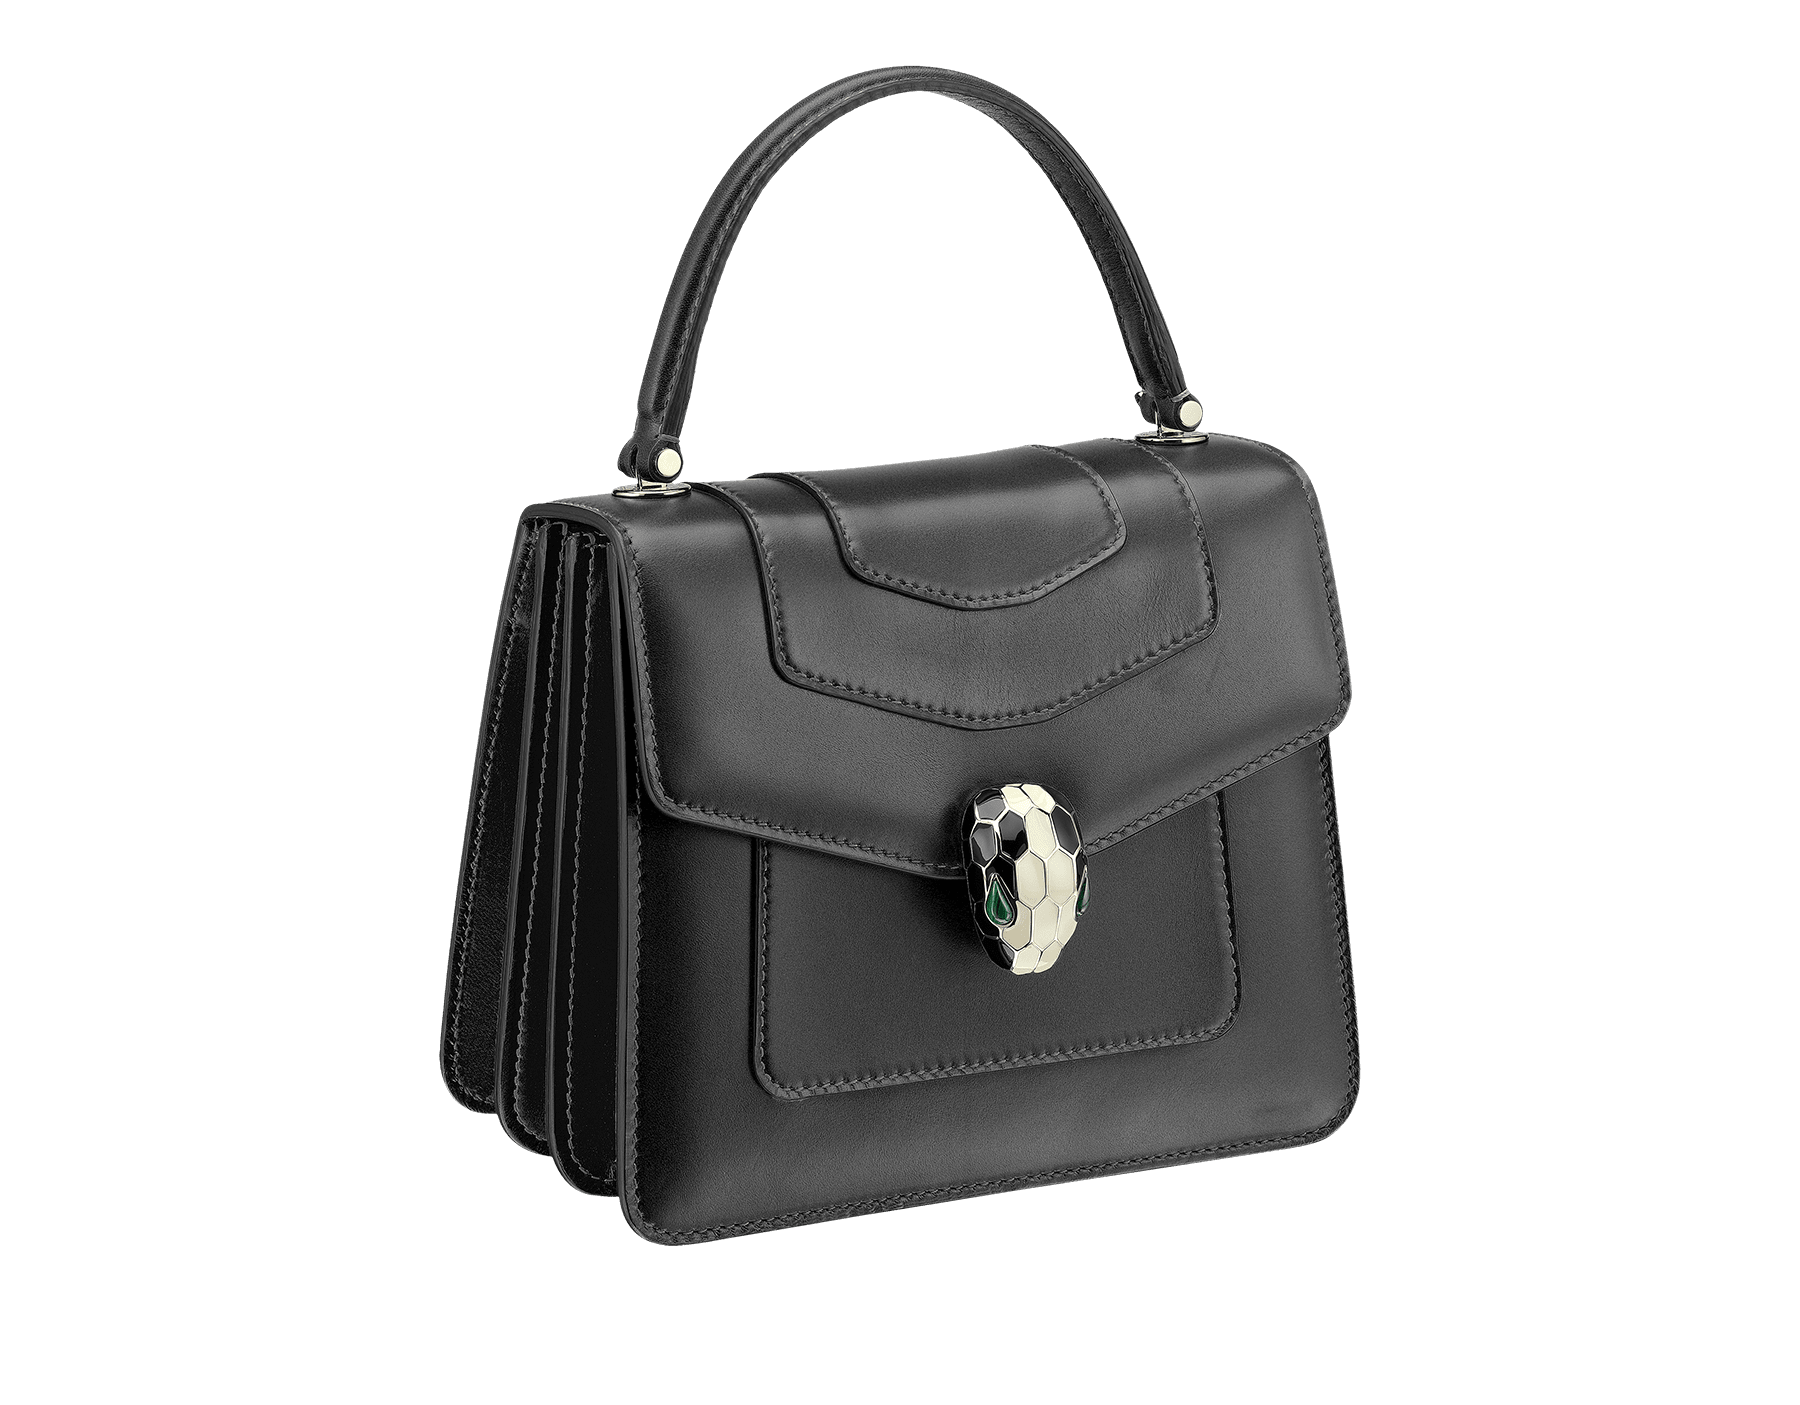 Flap cover bag Serpenti Forever in black calf leather and jade green gros-grain lining.Brass light gold plated hardware and snake head closure in black and white enamel with eyes in green malachite. 284537 image 2